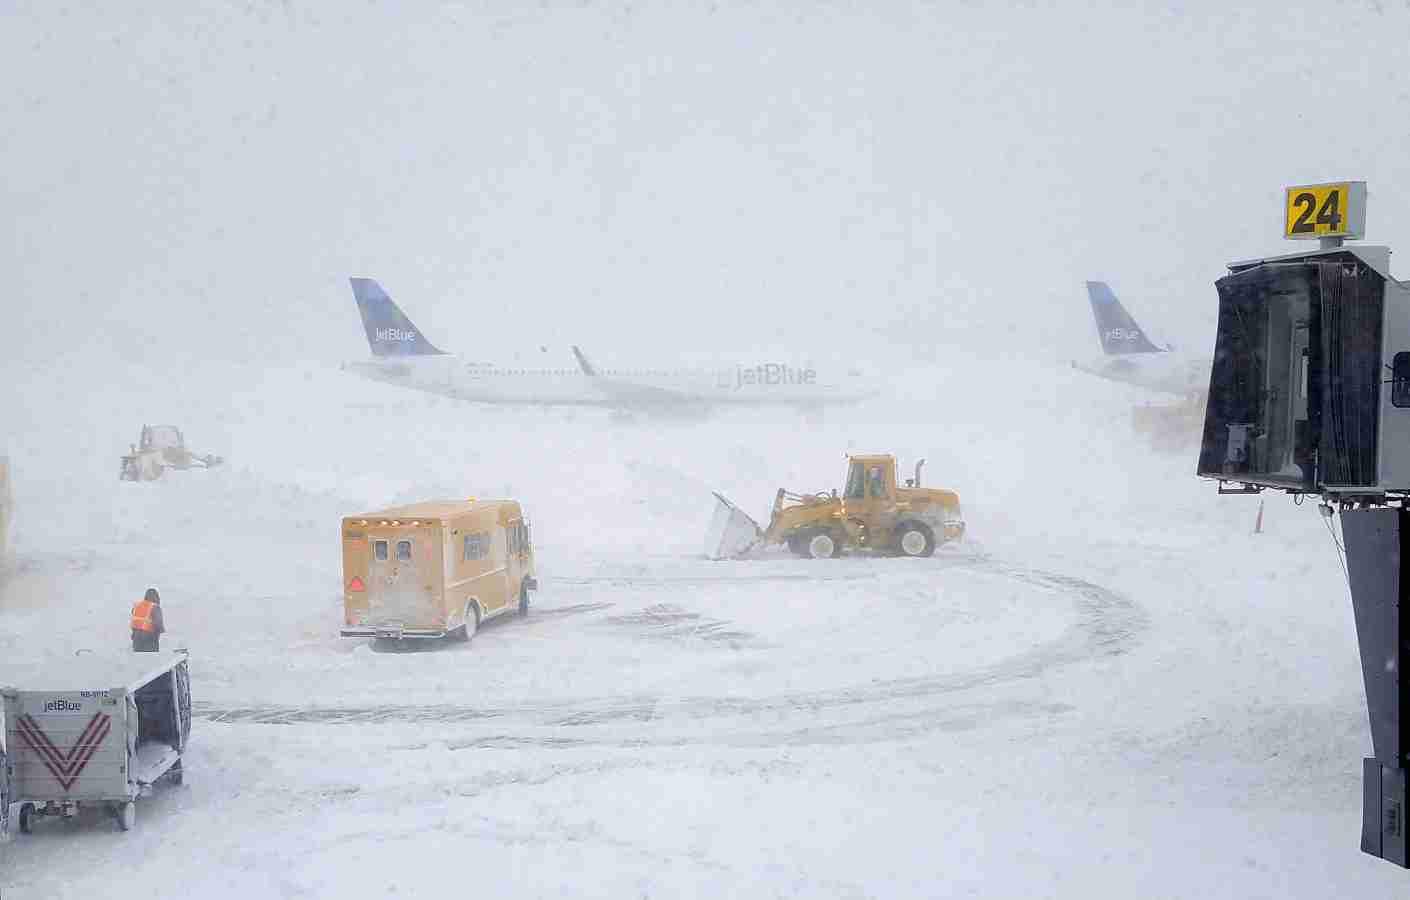 NEW YORK, NY - JANUARY 04:  Snow plows move snow as a JetBlue airplane waits outside terminal five at John F. Kennedy International Airport on January 4, 2018 in the Queens borough of New York City. A winter storm is traveling up the east coast of the United States dumping snow and creating blizzard like conditions in many areas. (Photo by Rebecca Butala How/Getty Images)